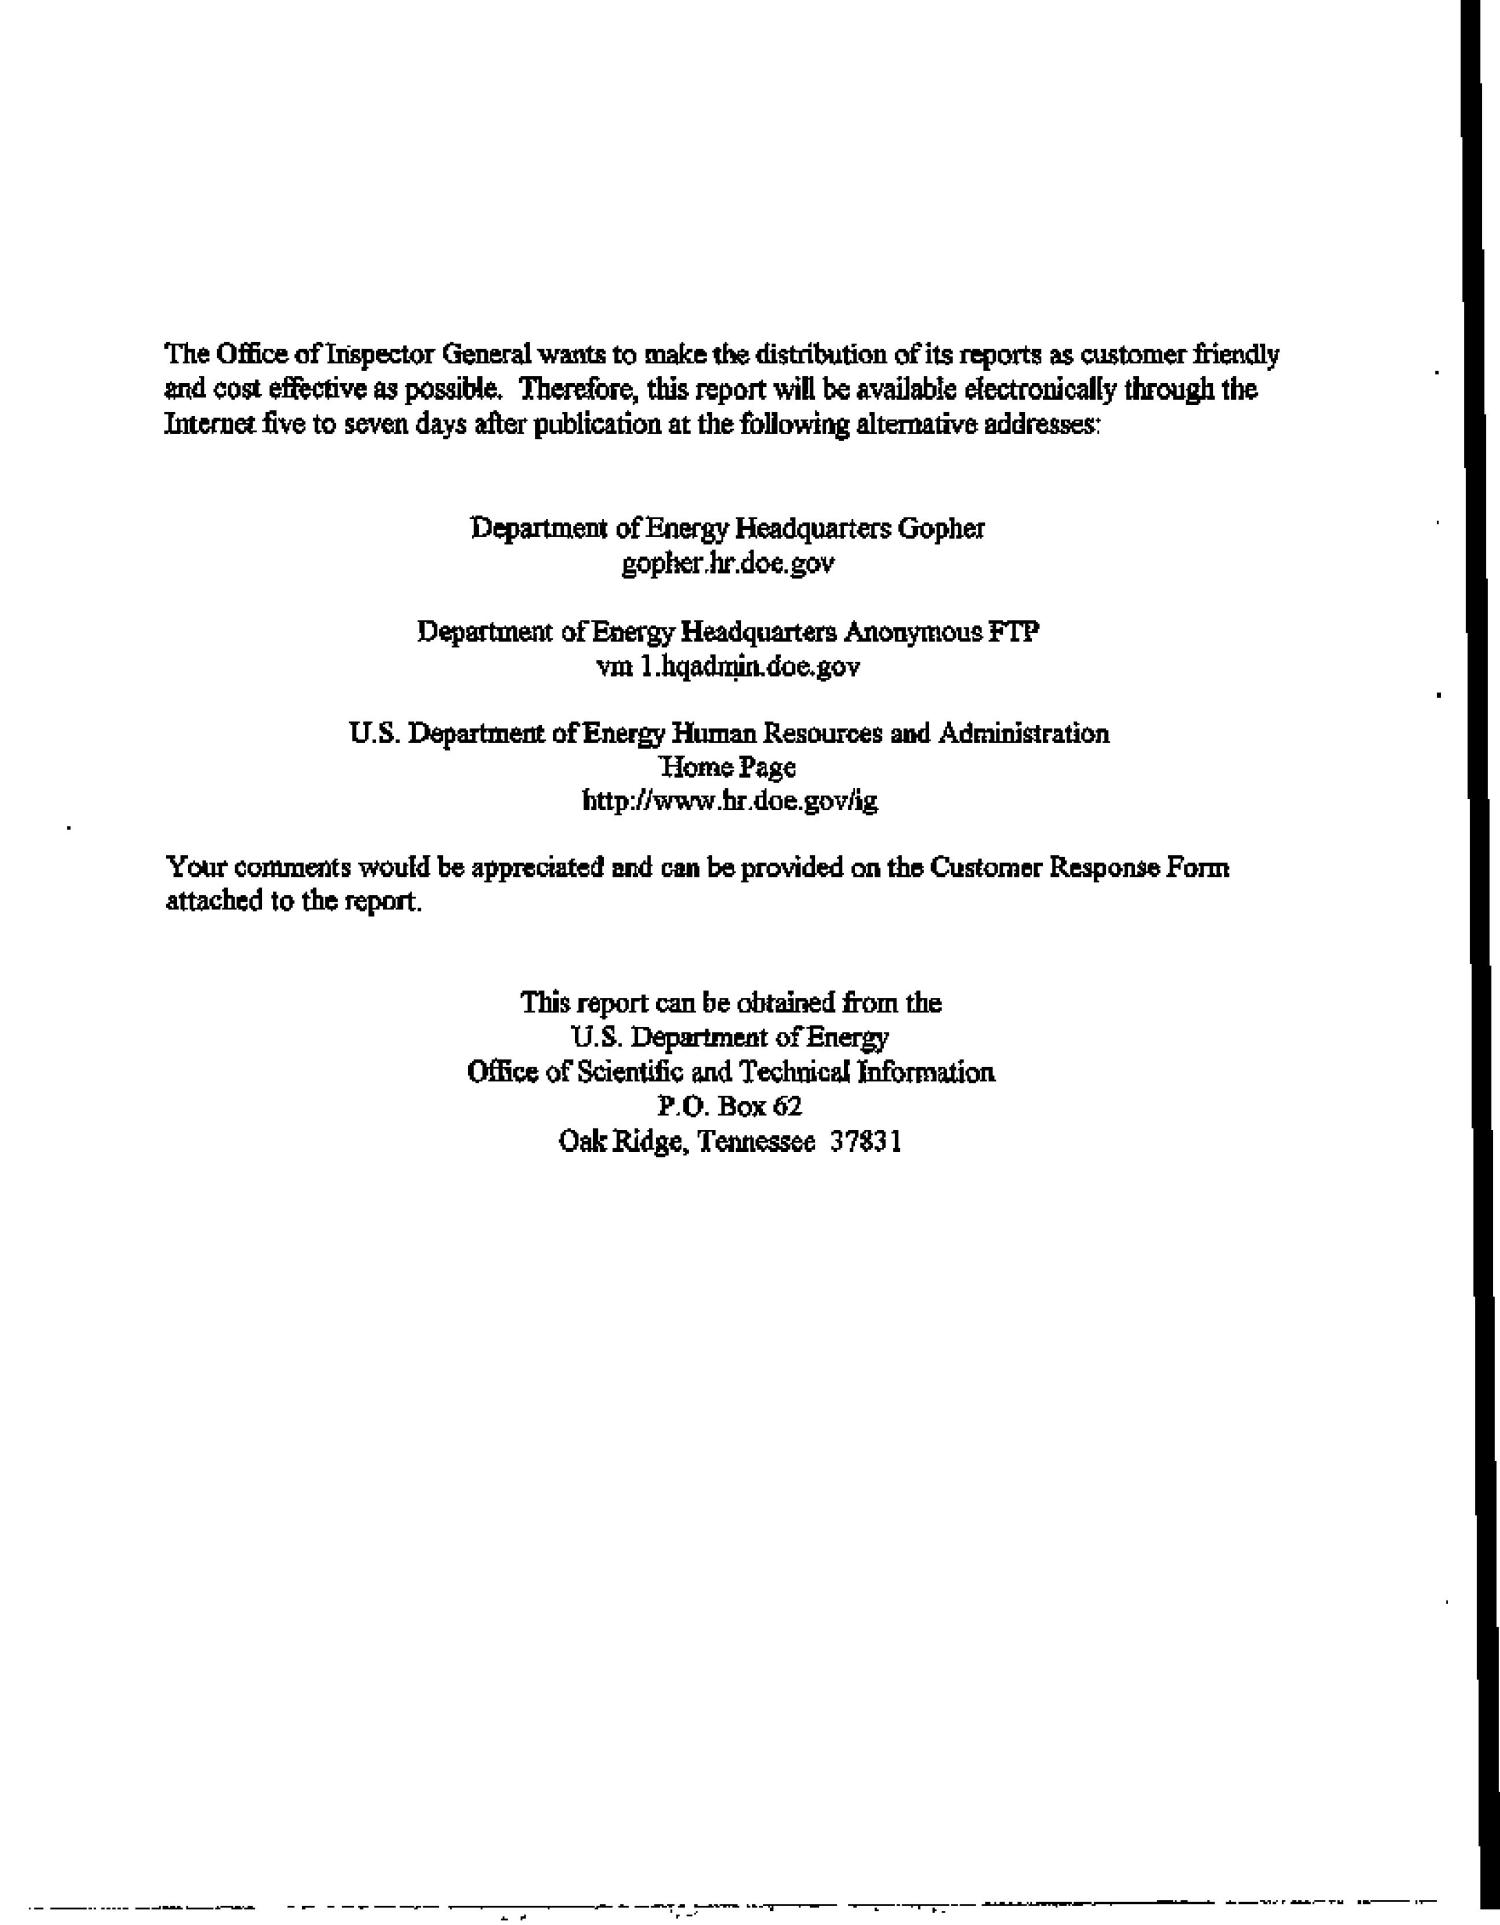 Audit of the US Department of Energy`s consolidated financial statements for Fiscal Year 1996                                                                                                      [Sequence #]: 2 of 117